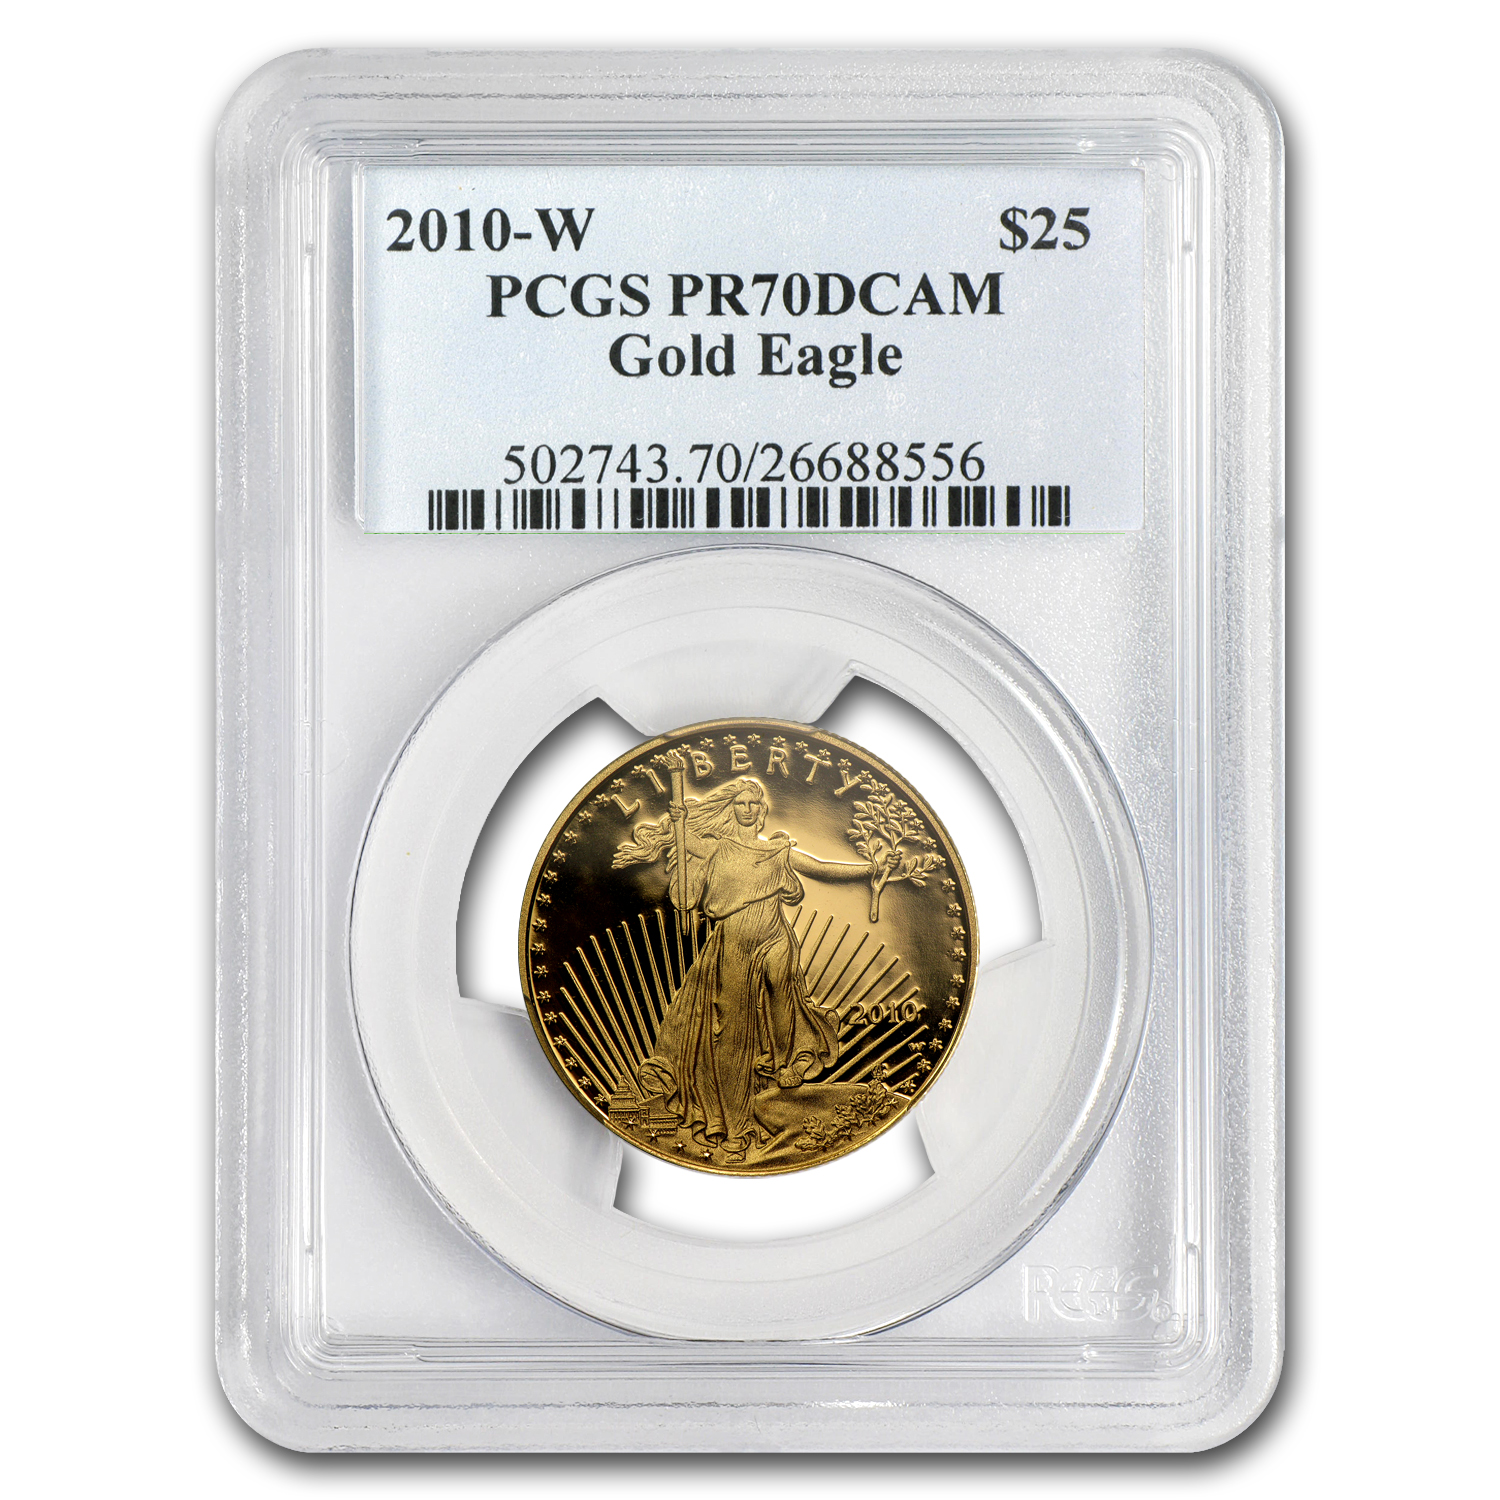 2010-W 1/2 oz Proof Gold American Eagle PR-70 PCGS